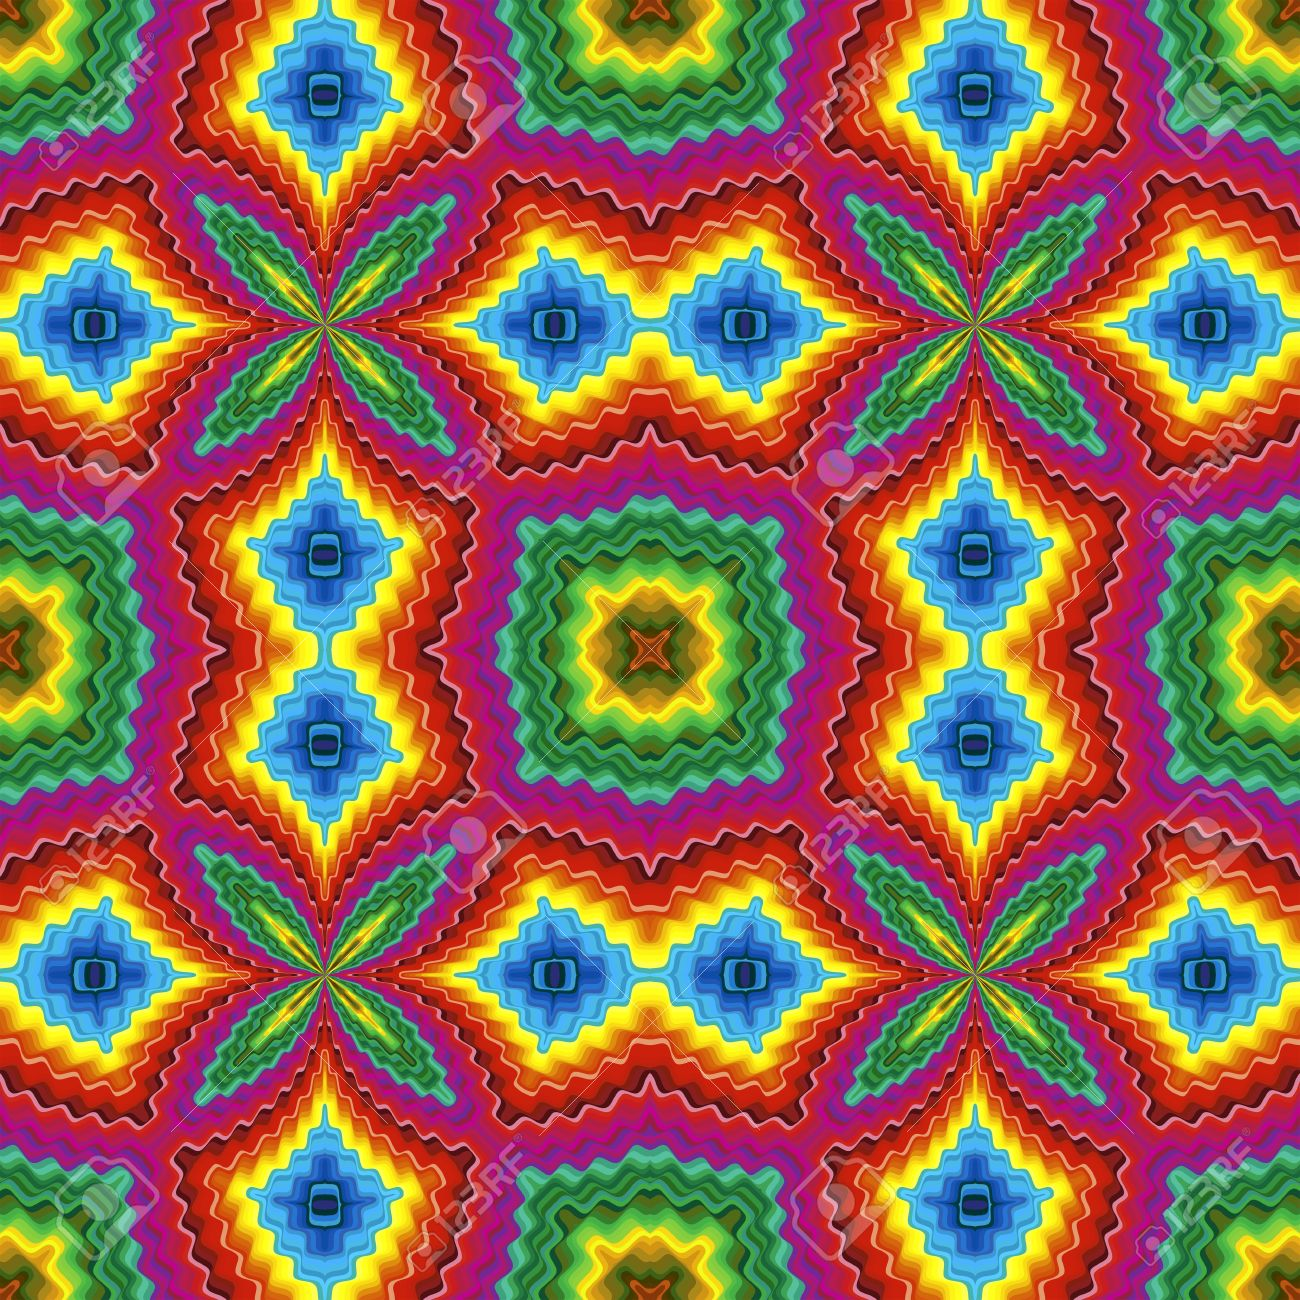 Pop art disco pattern with optic illusion and floral elements in vivid colors Stock Photo - 13614671